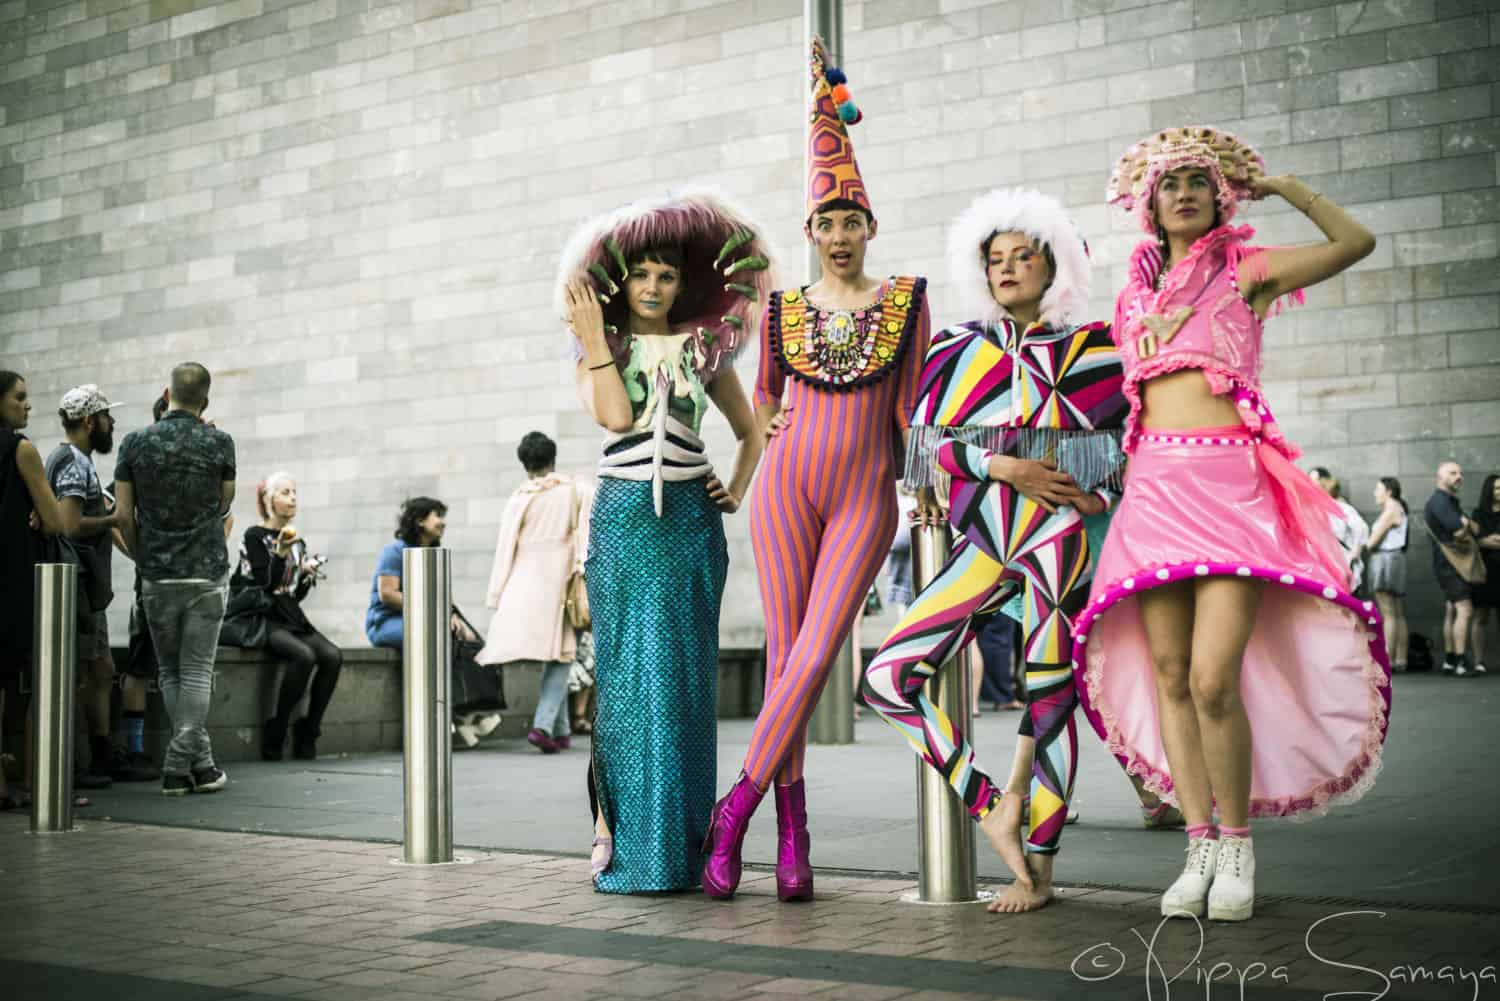 promo event outside jean paul gaultier - Fashion Production Manager